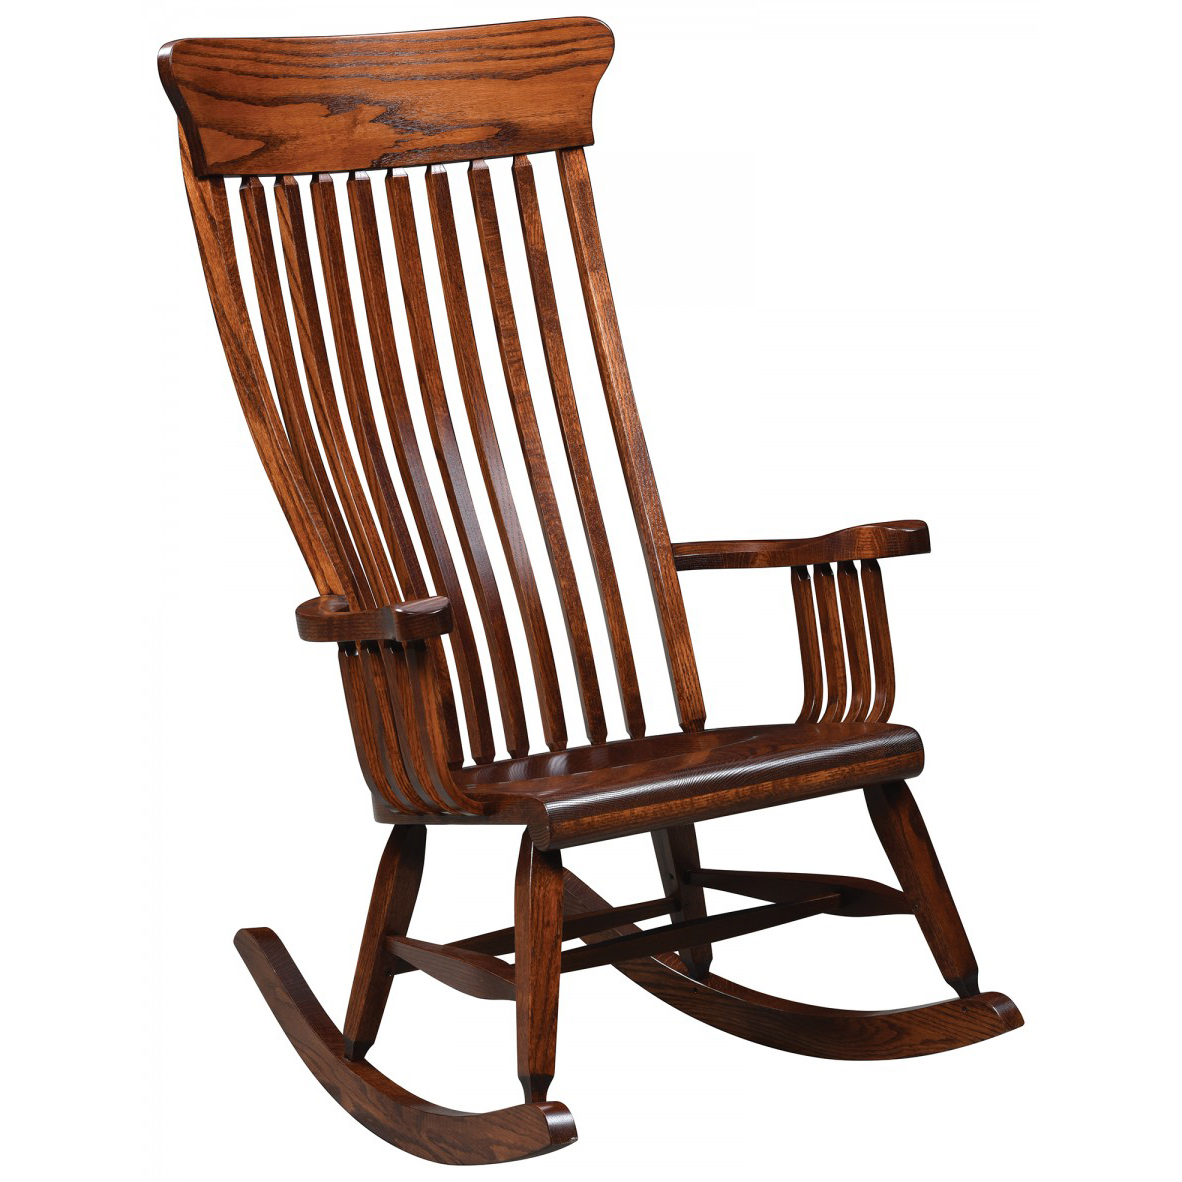 handmade rocking chairs mickey mouse recliner chair uk old south rocker amish crafted furniture